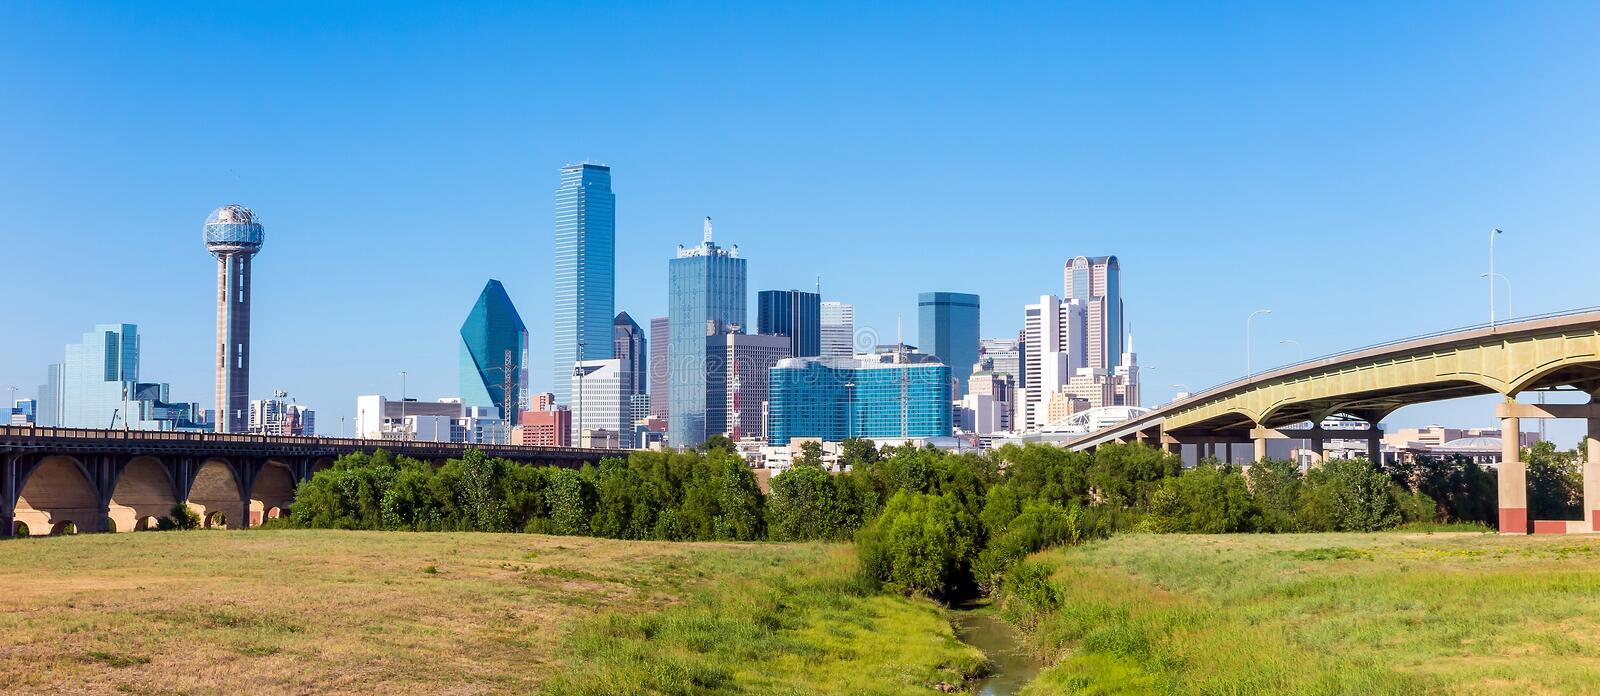 Une vue de l'horizon de Dallas, le Texas images libres de droits